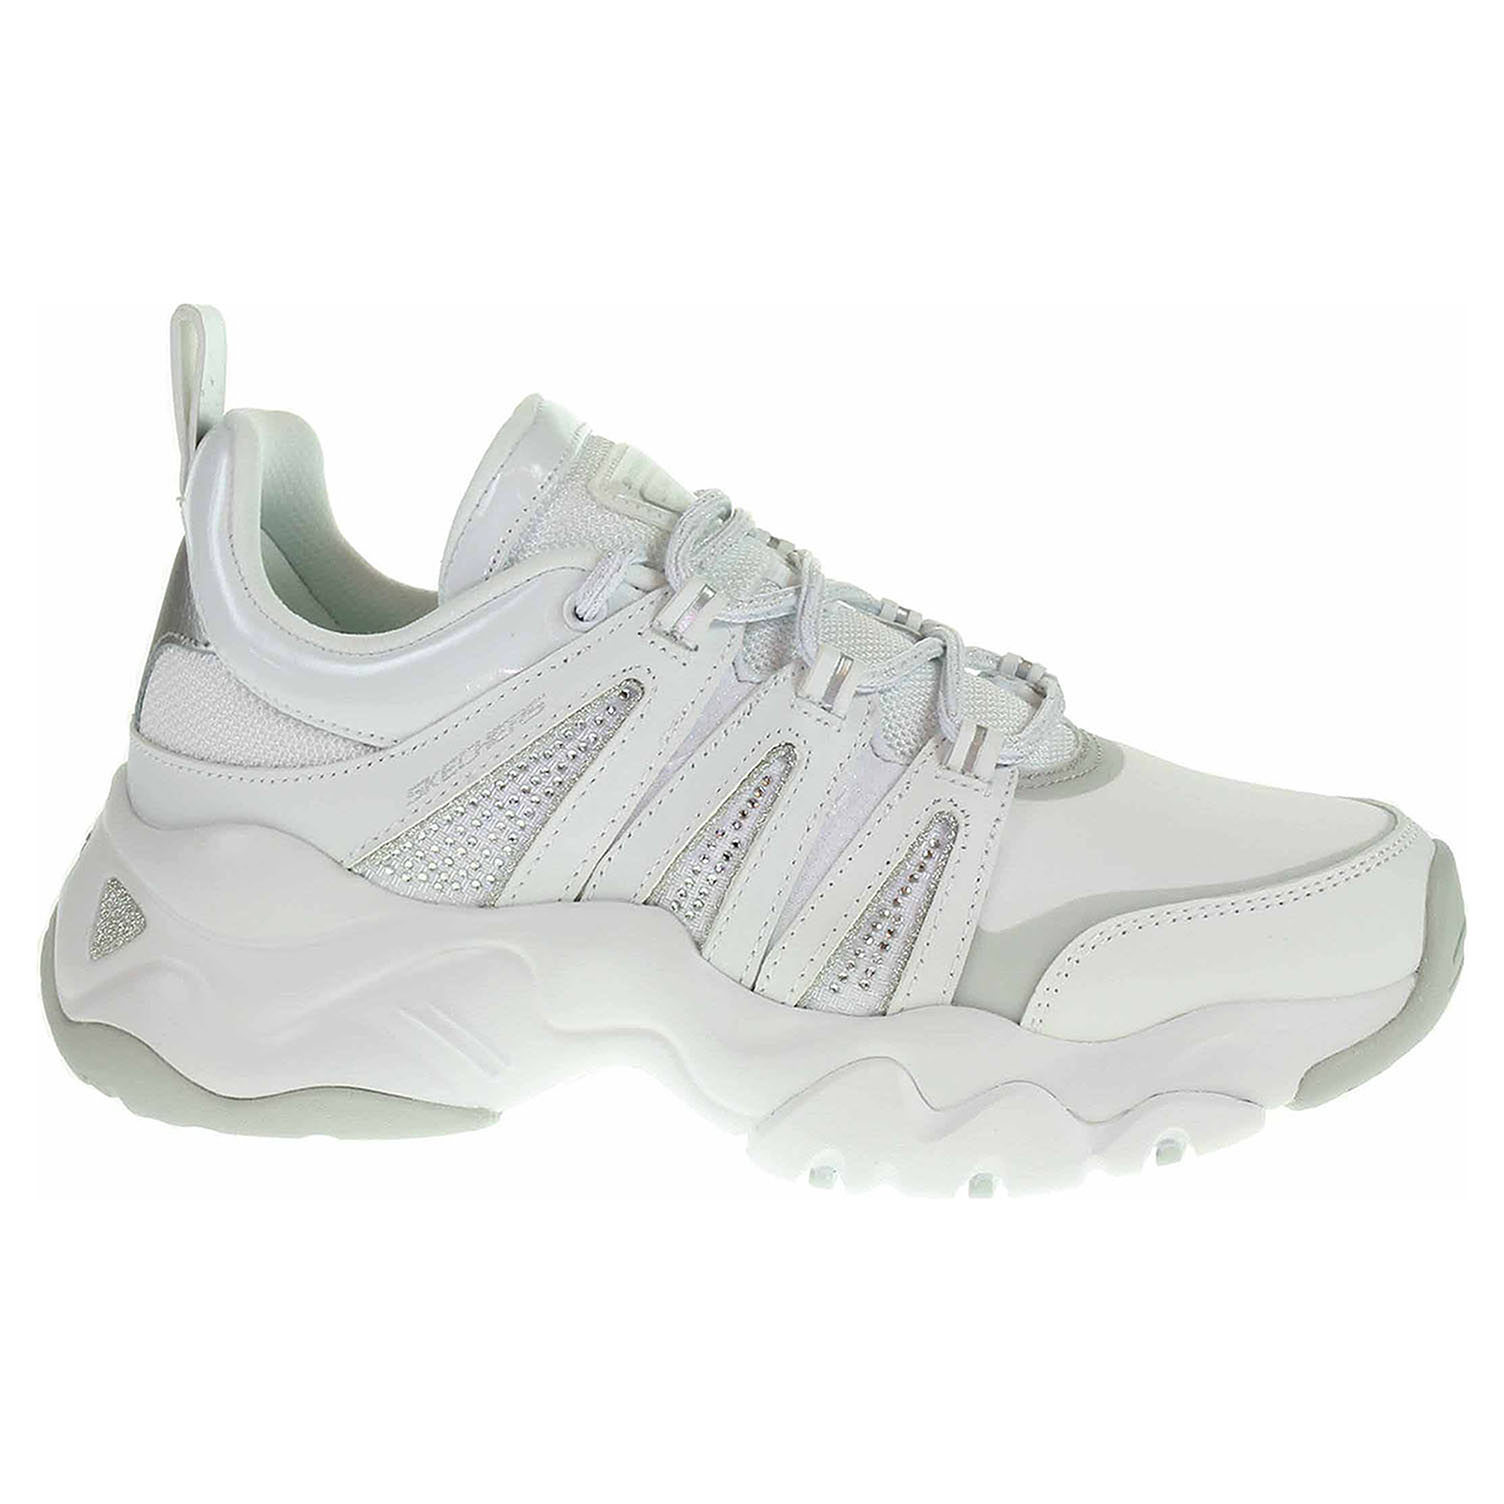 Skechers D´Lites 3.0 - Intense Force white-silver 12959 WSL 39